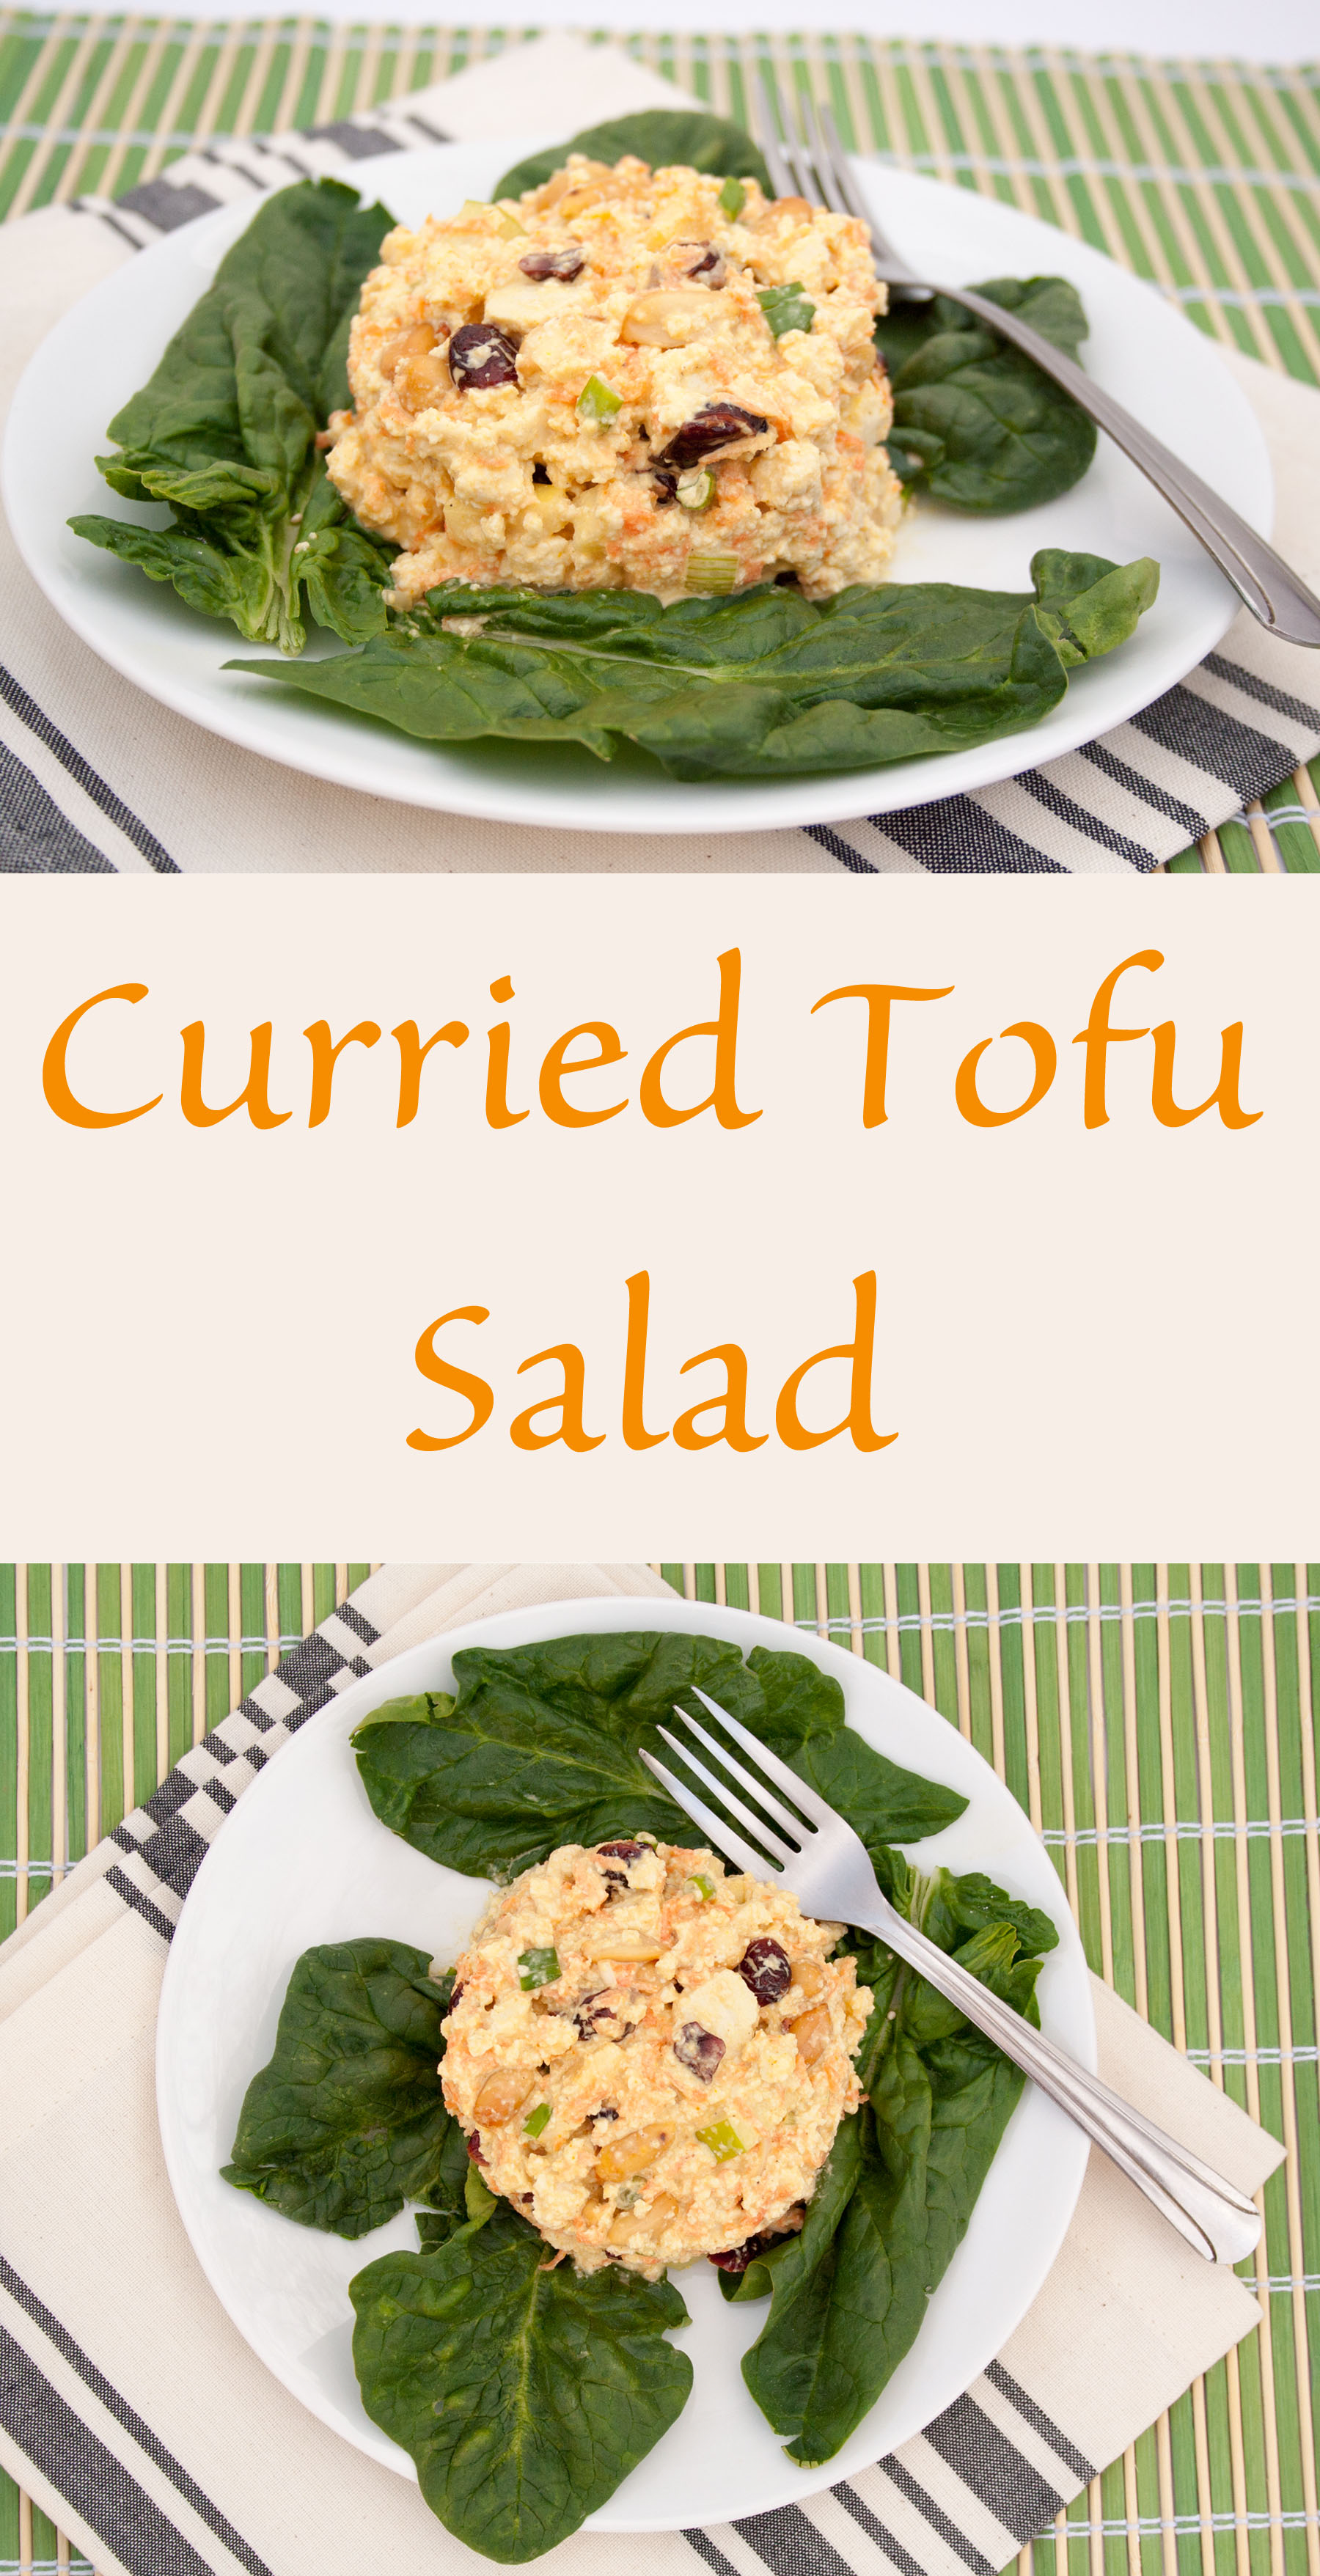 Curried Tofu Salad collage photo with text.